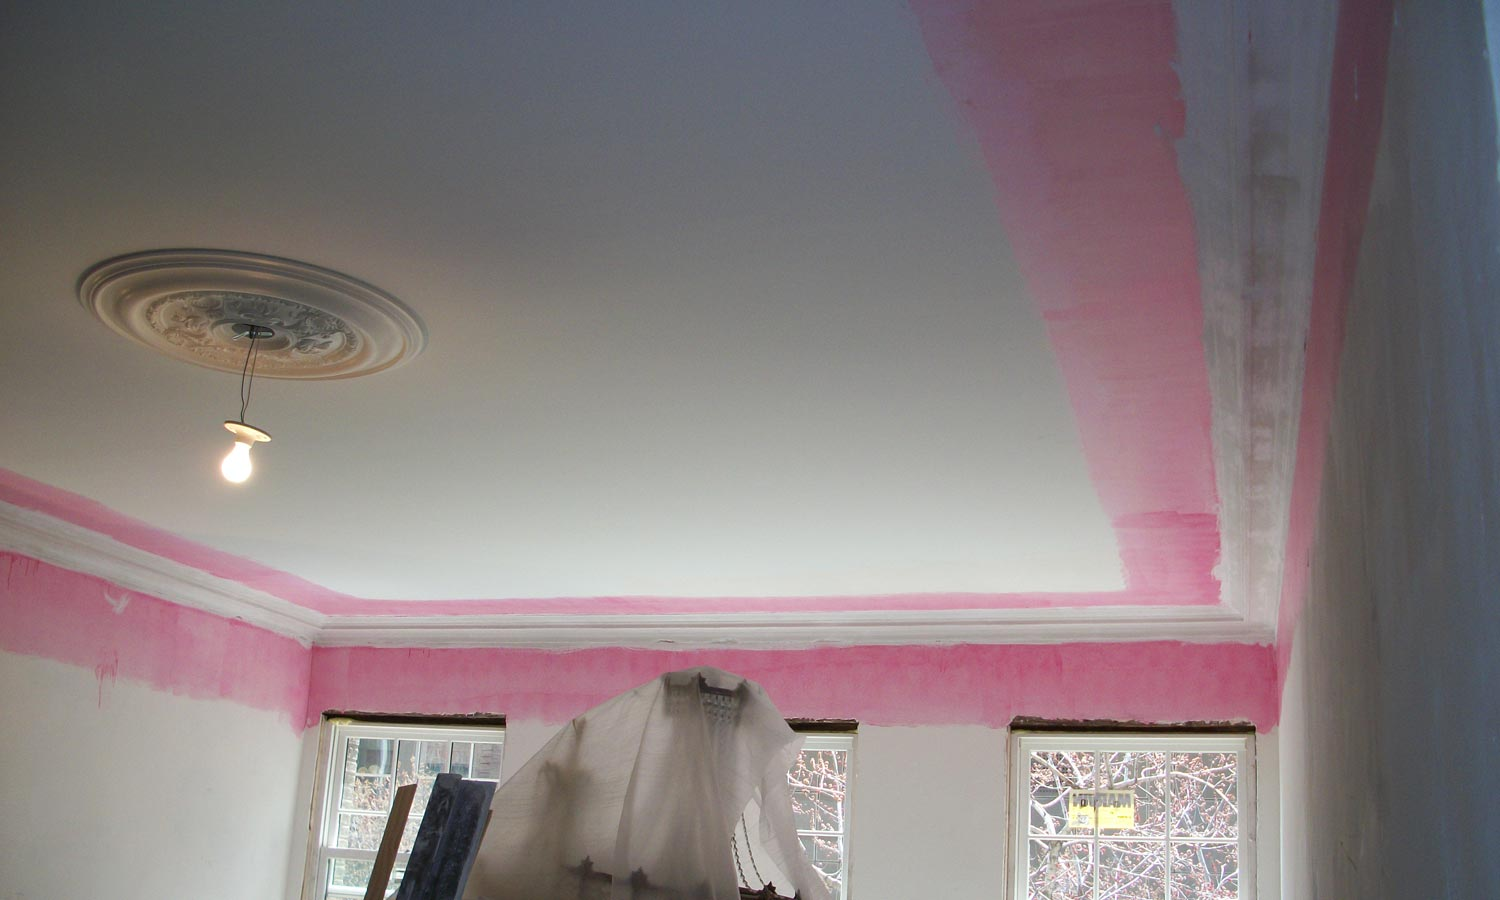 plaster-patching-21